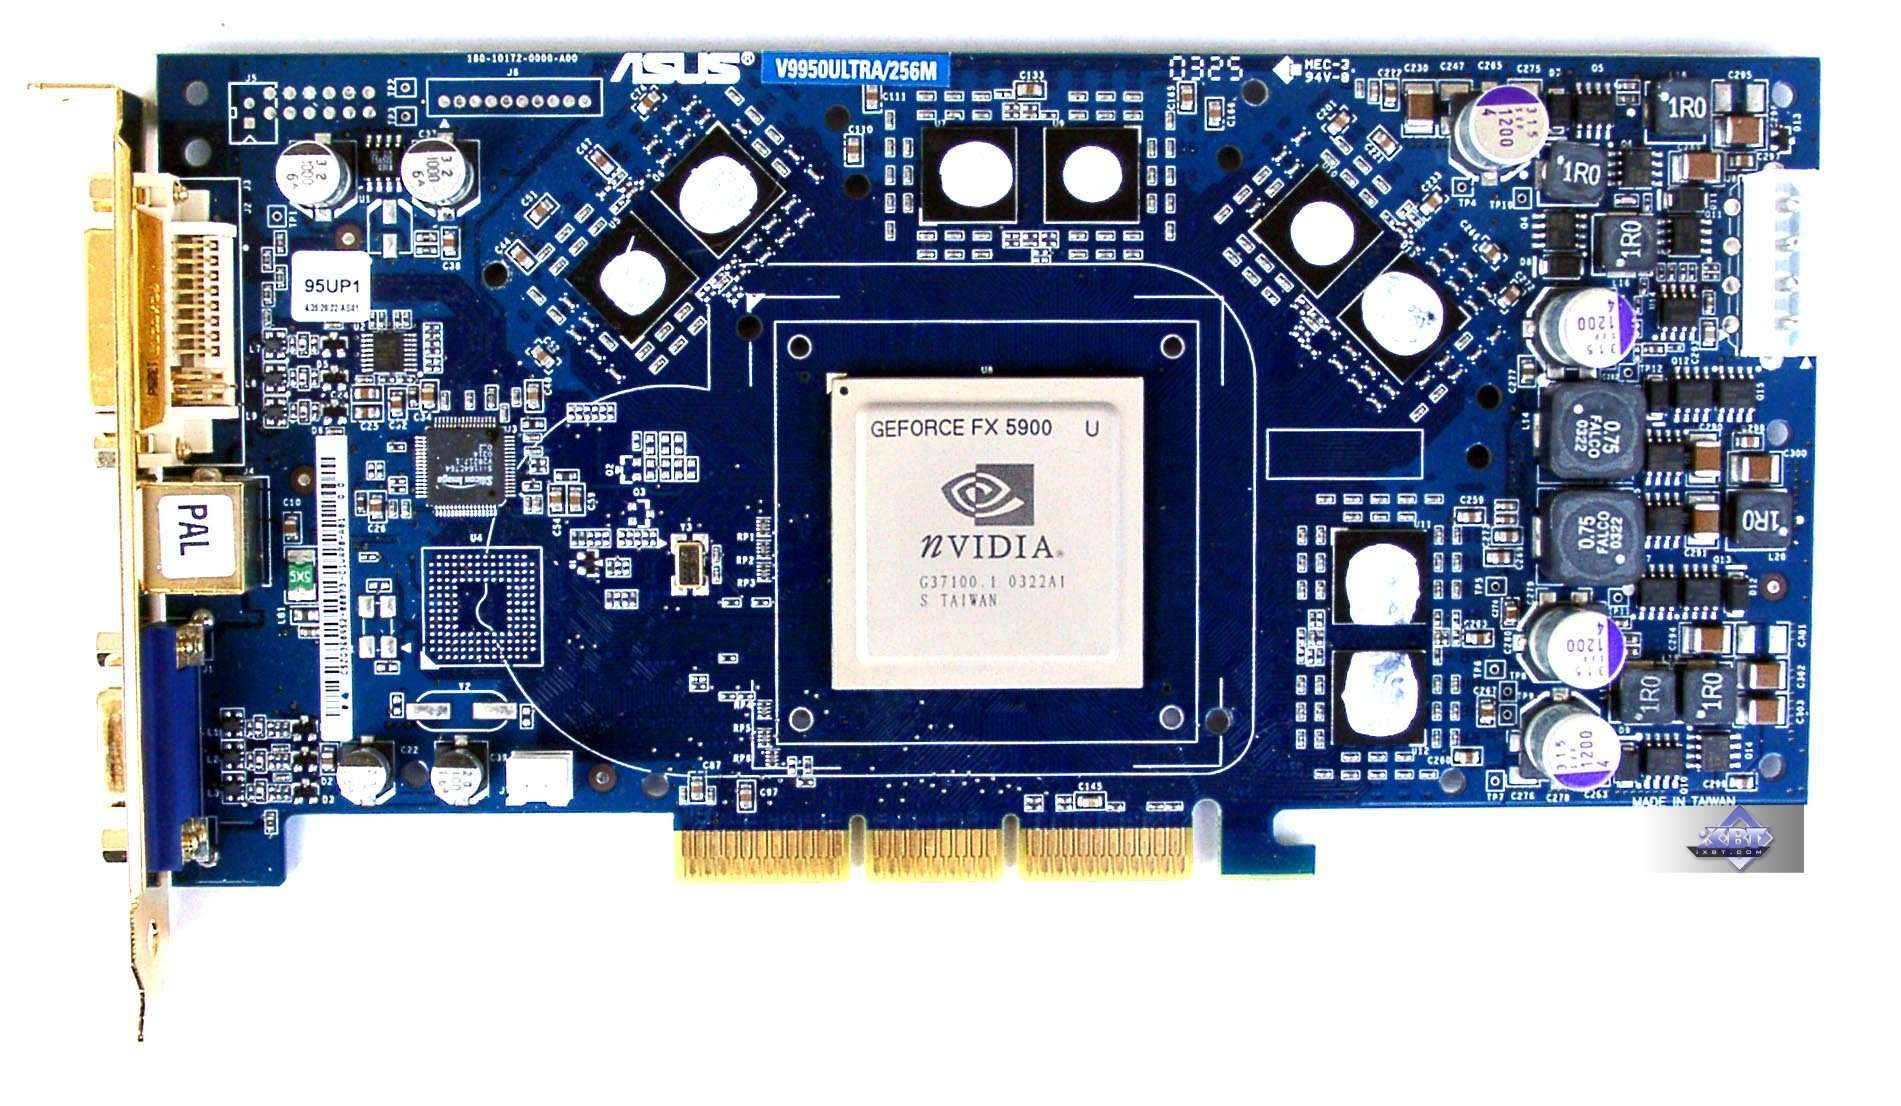 ASUS V9950 DELUXE SERIES DRIVERS FOR WINDOWS 8